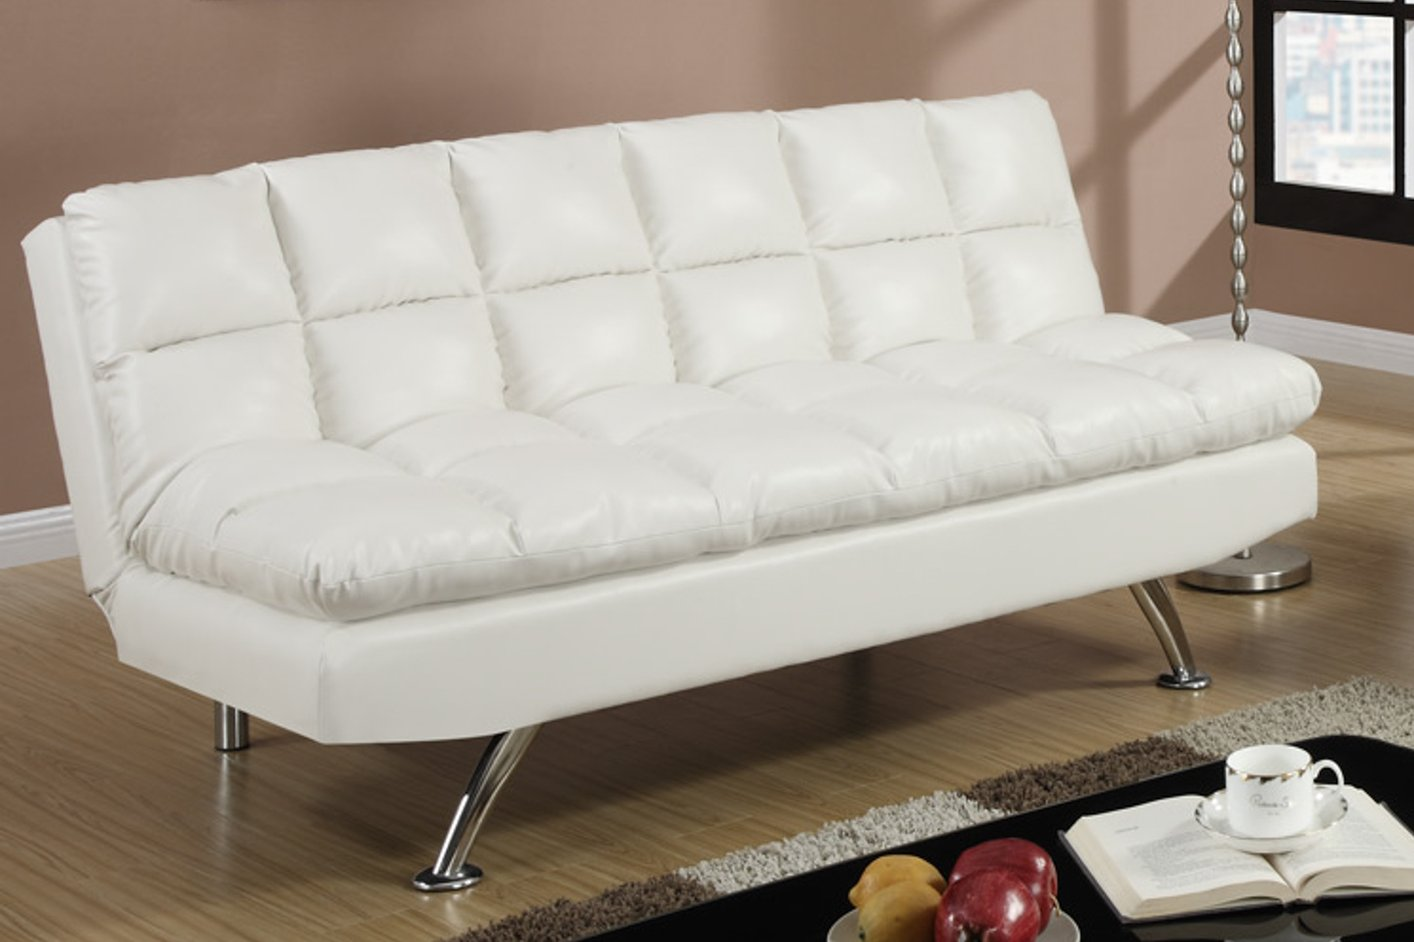 Poundex F7015 White Twin Size Leather Sofa Bed Steal A Sofa Furniture Outlet Los Angeles Ca